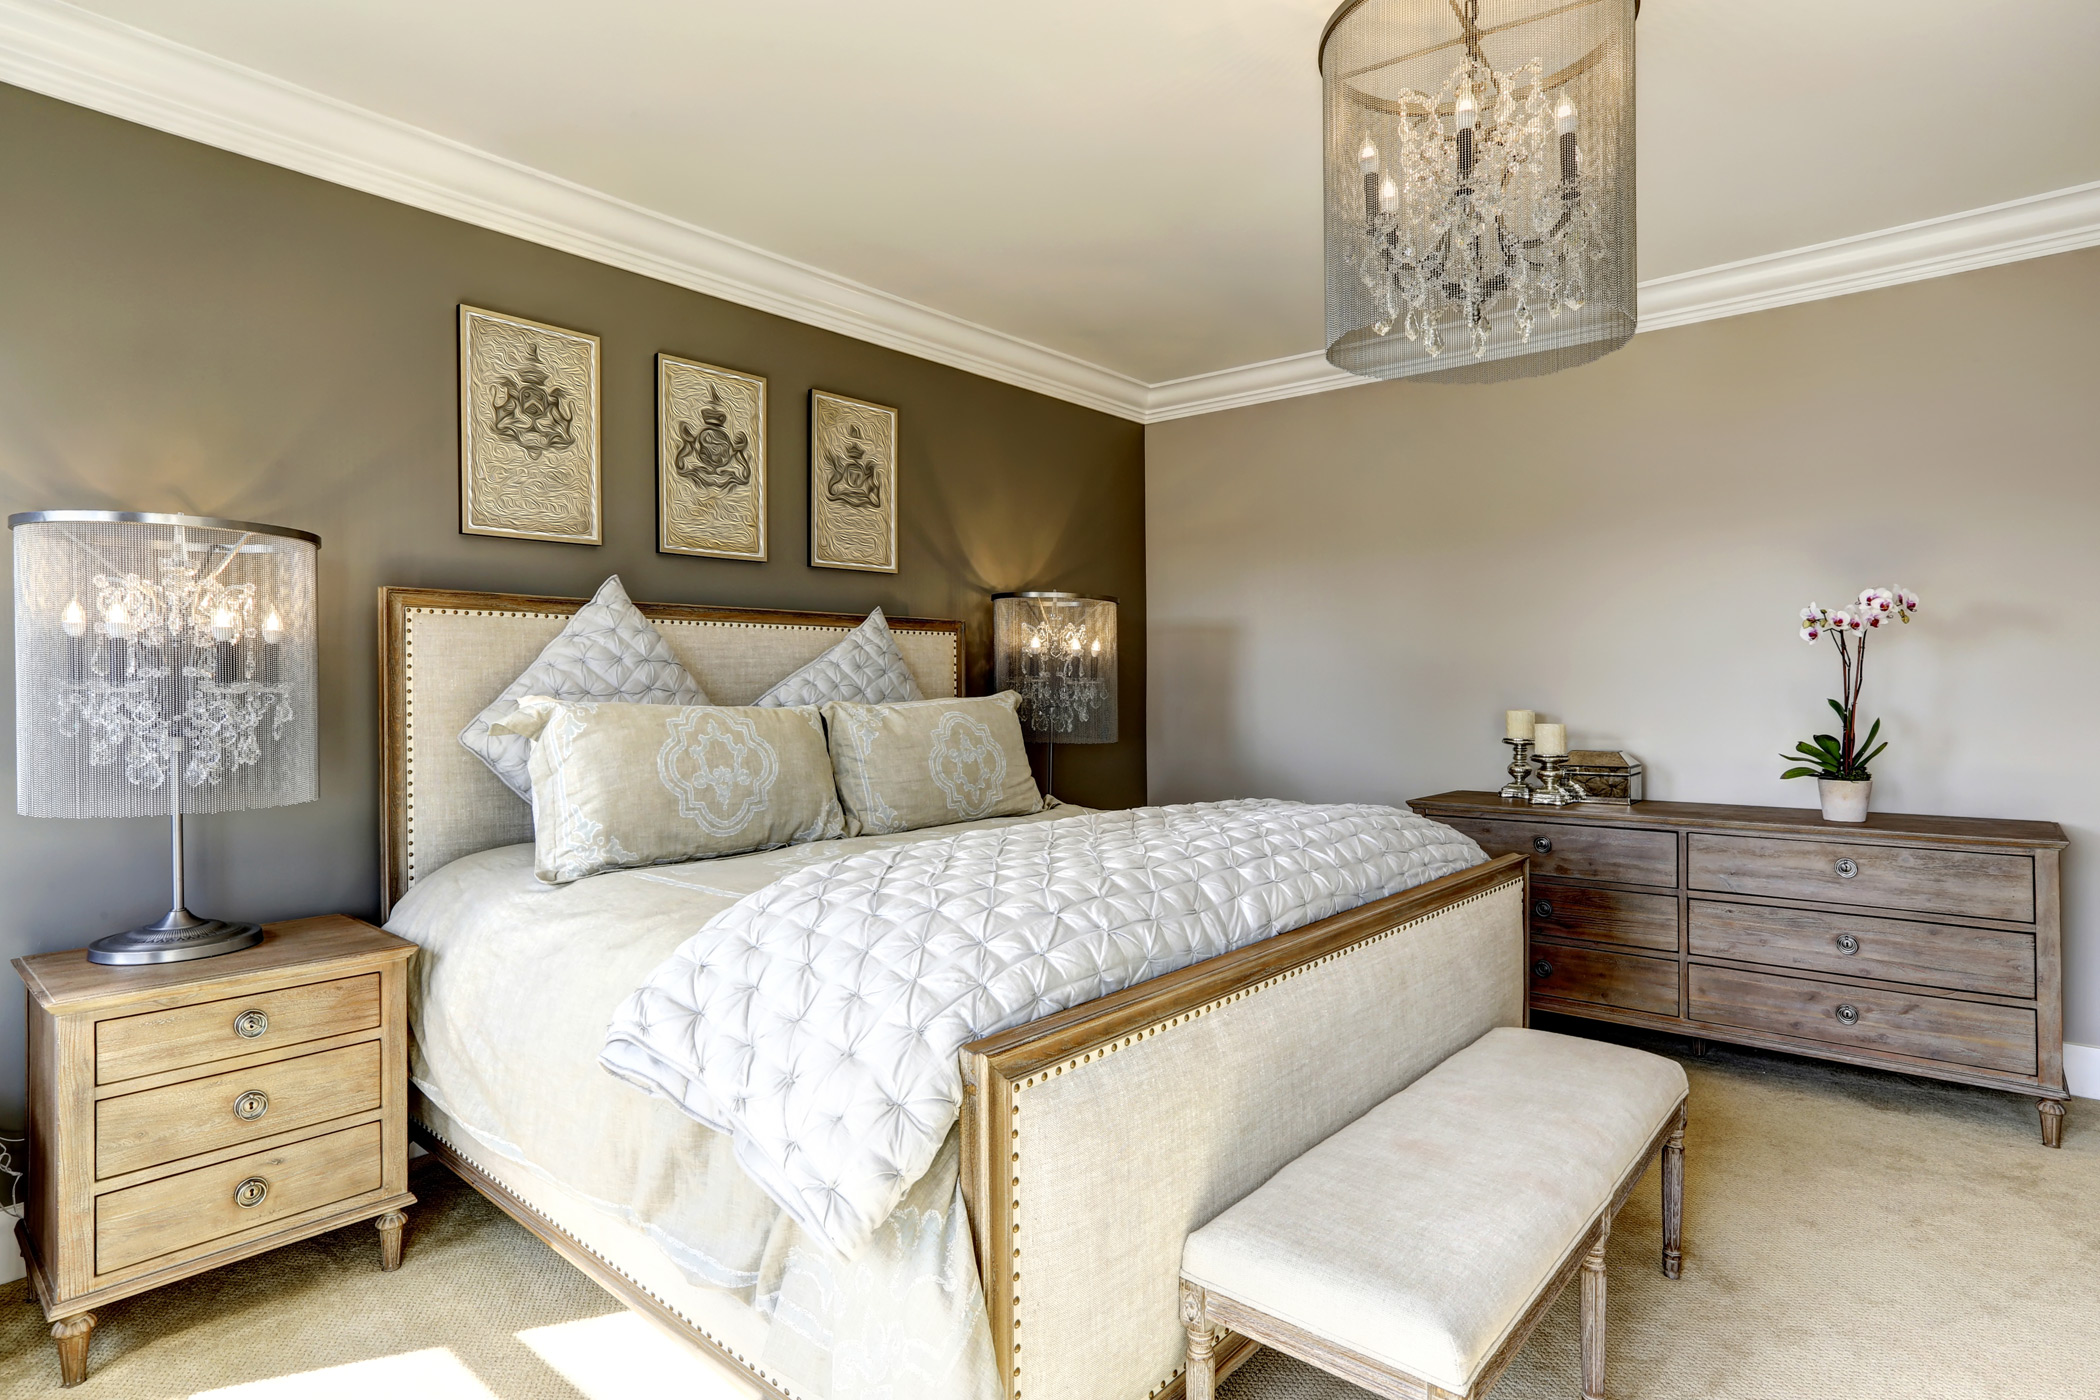 a modern decorated bedroom with a painted beige accent wall decorated with a chandelier, flowers and artwork